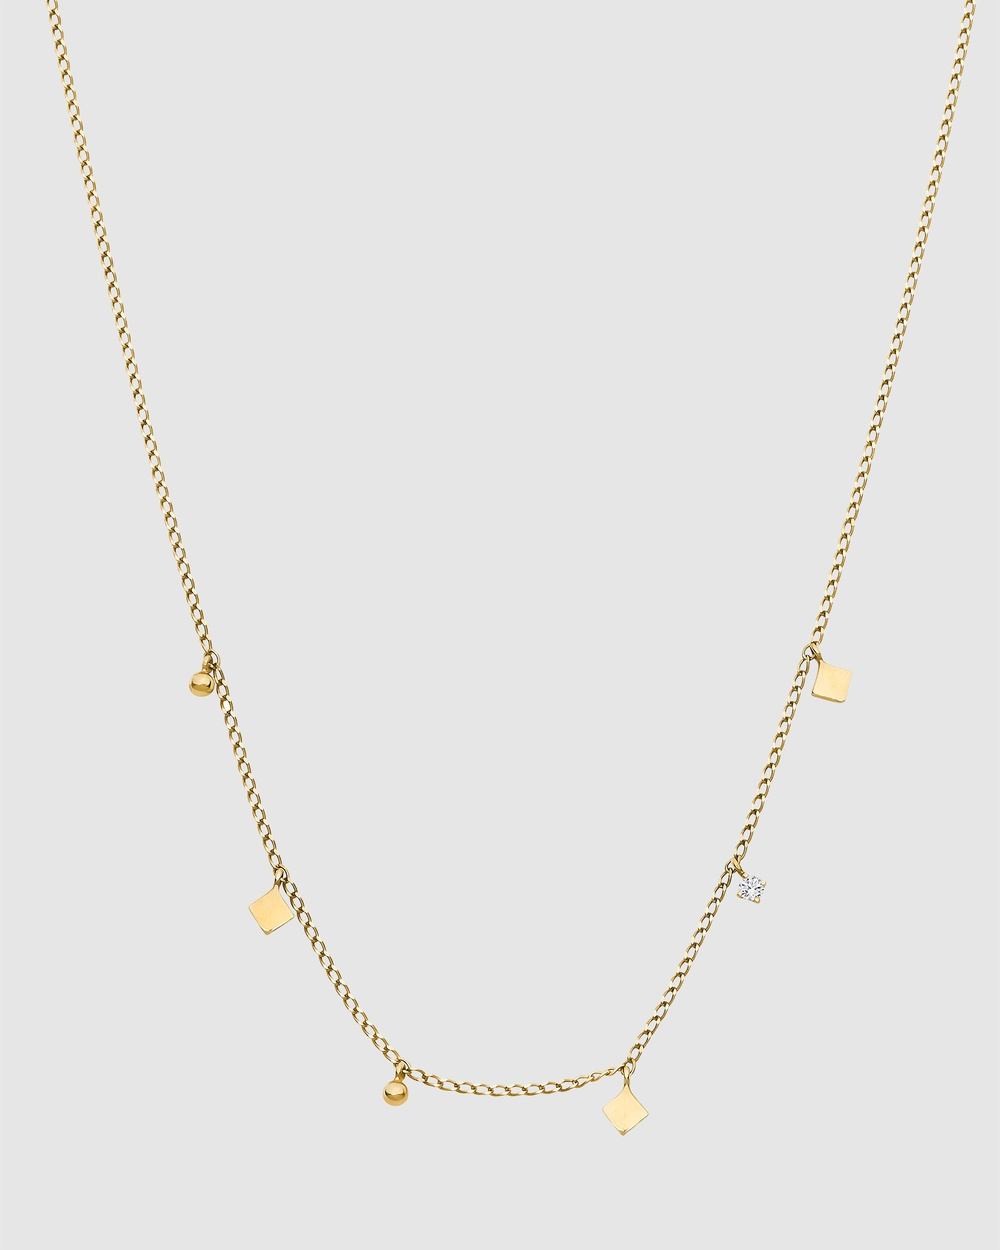 Luna Rae Solid Gold Mirrored Stars Necklace Jewellery Gold